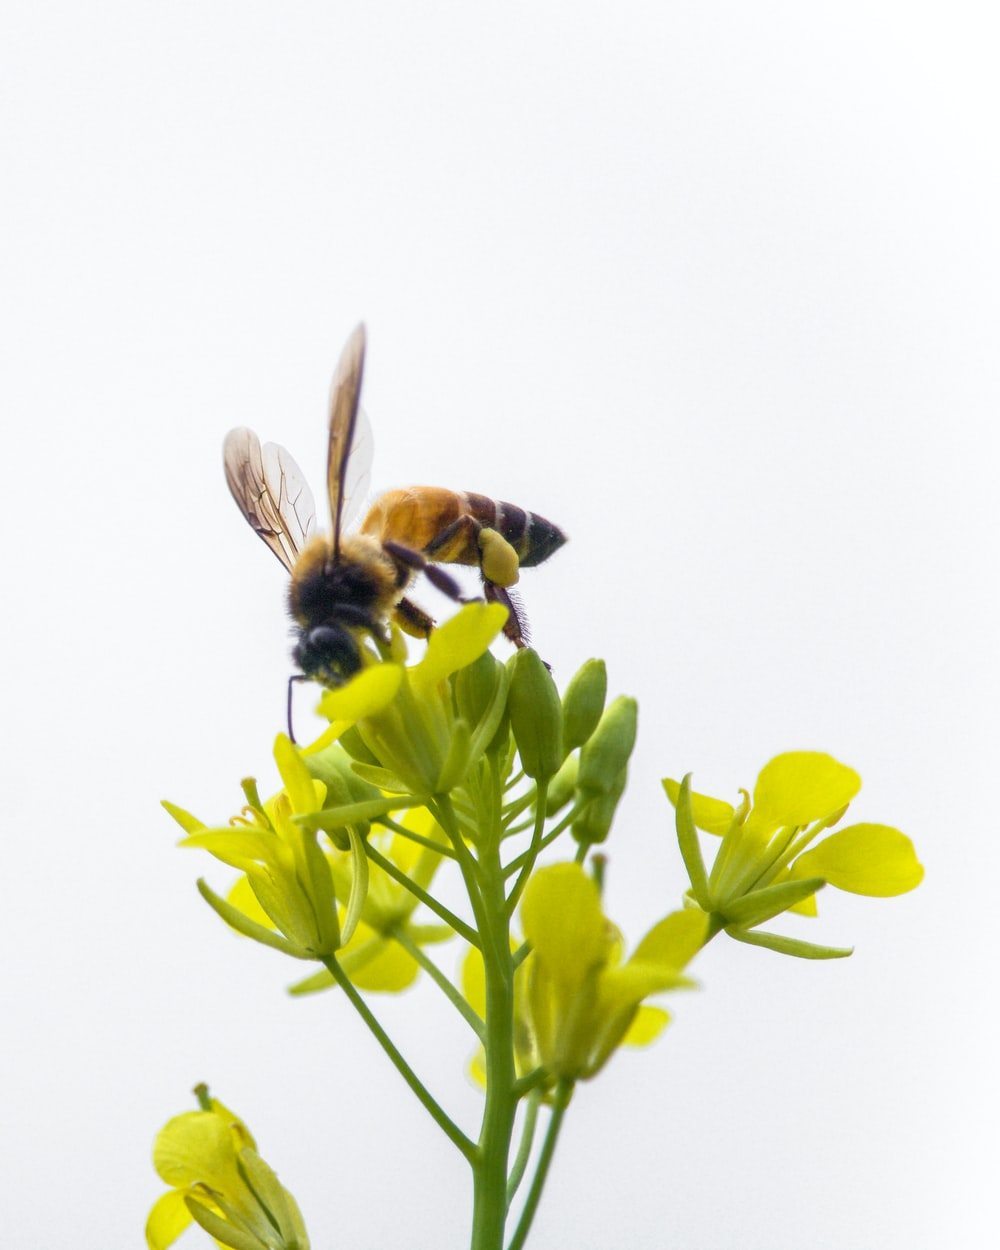 bee perched on yellow-petaled flower